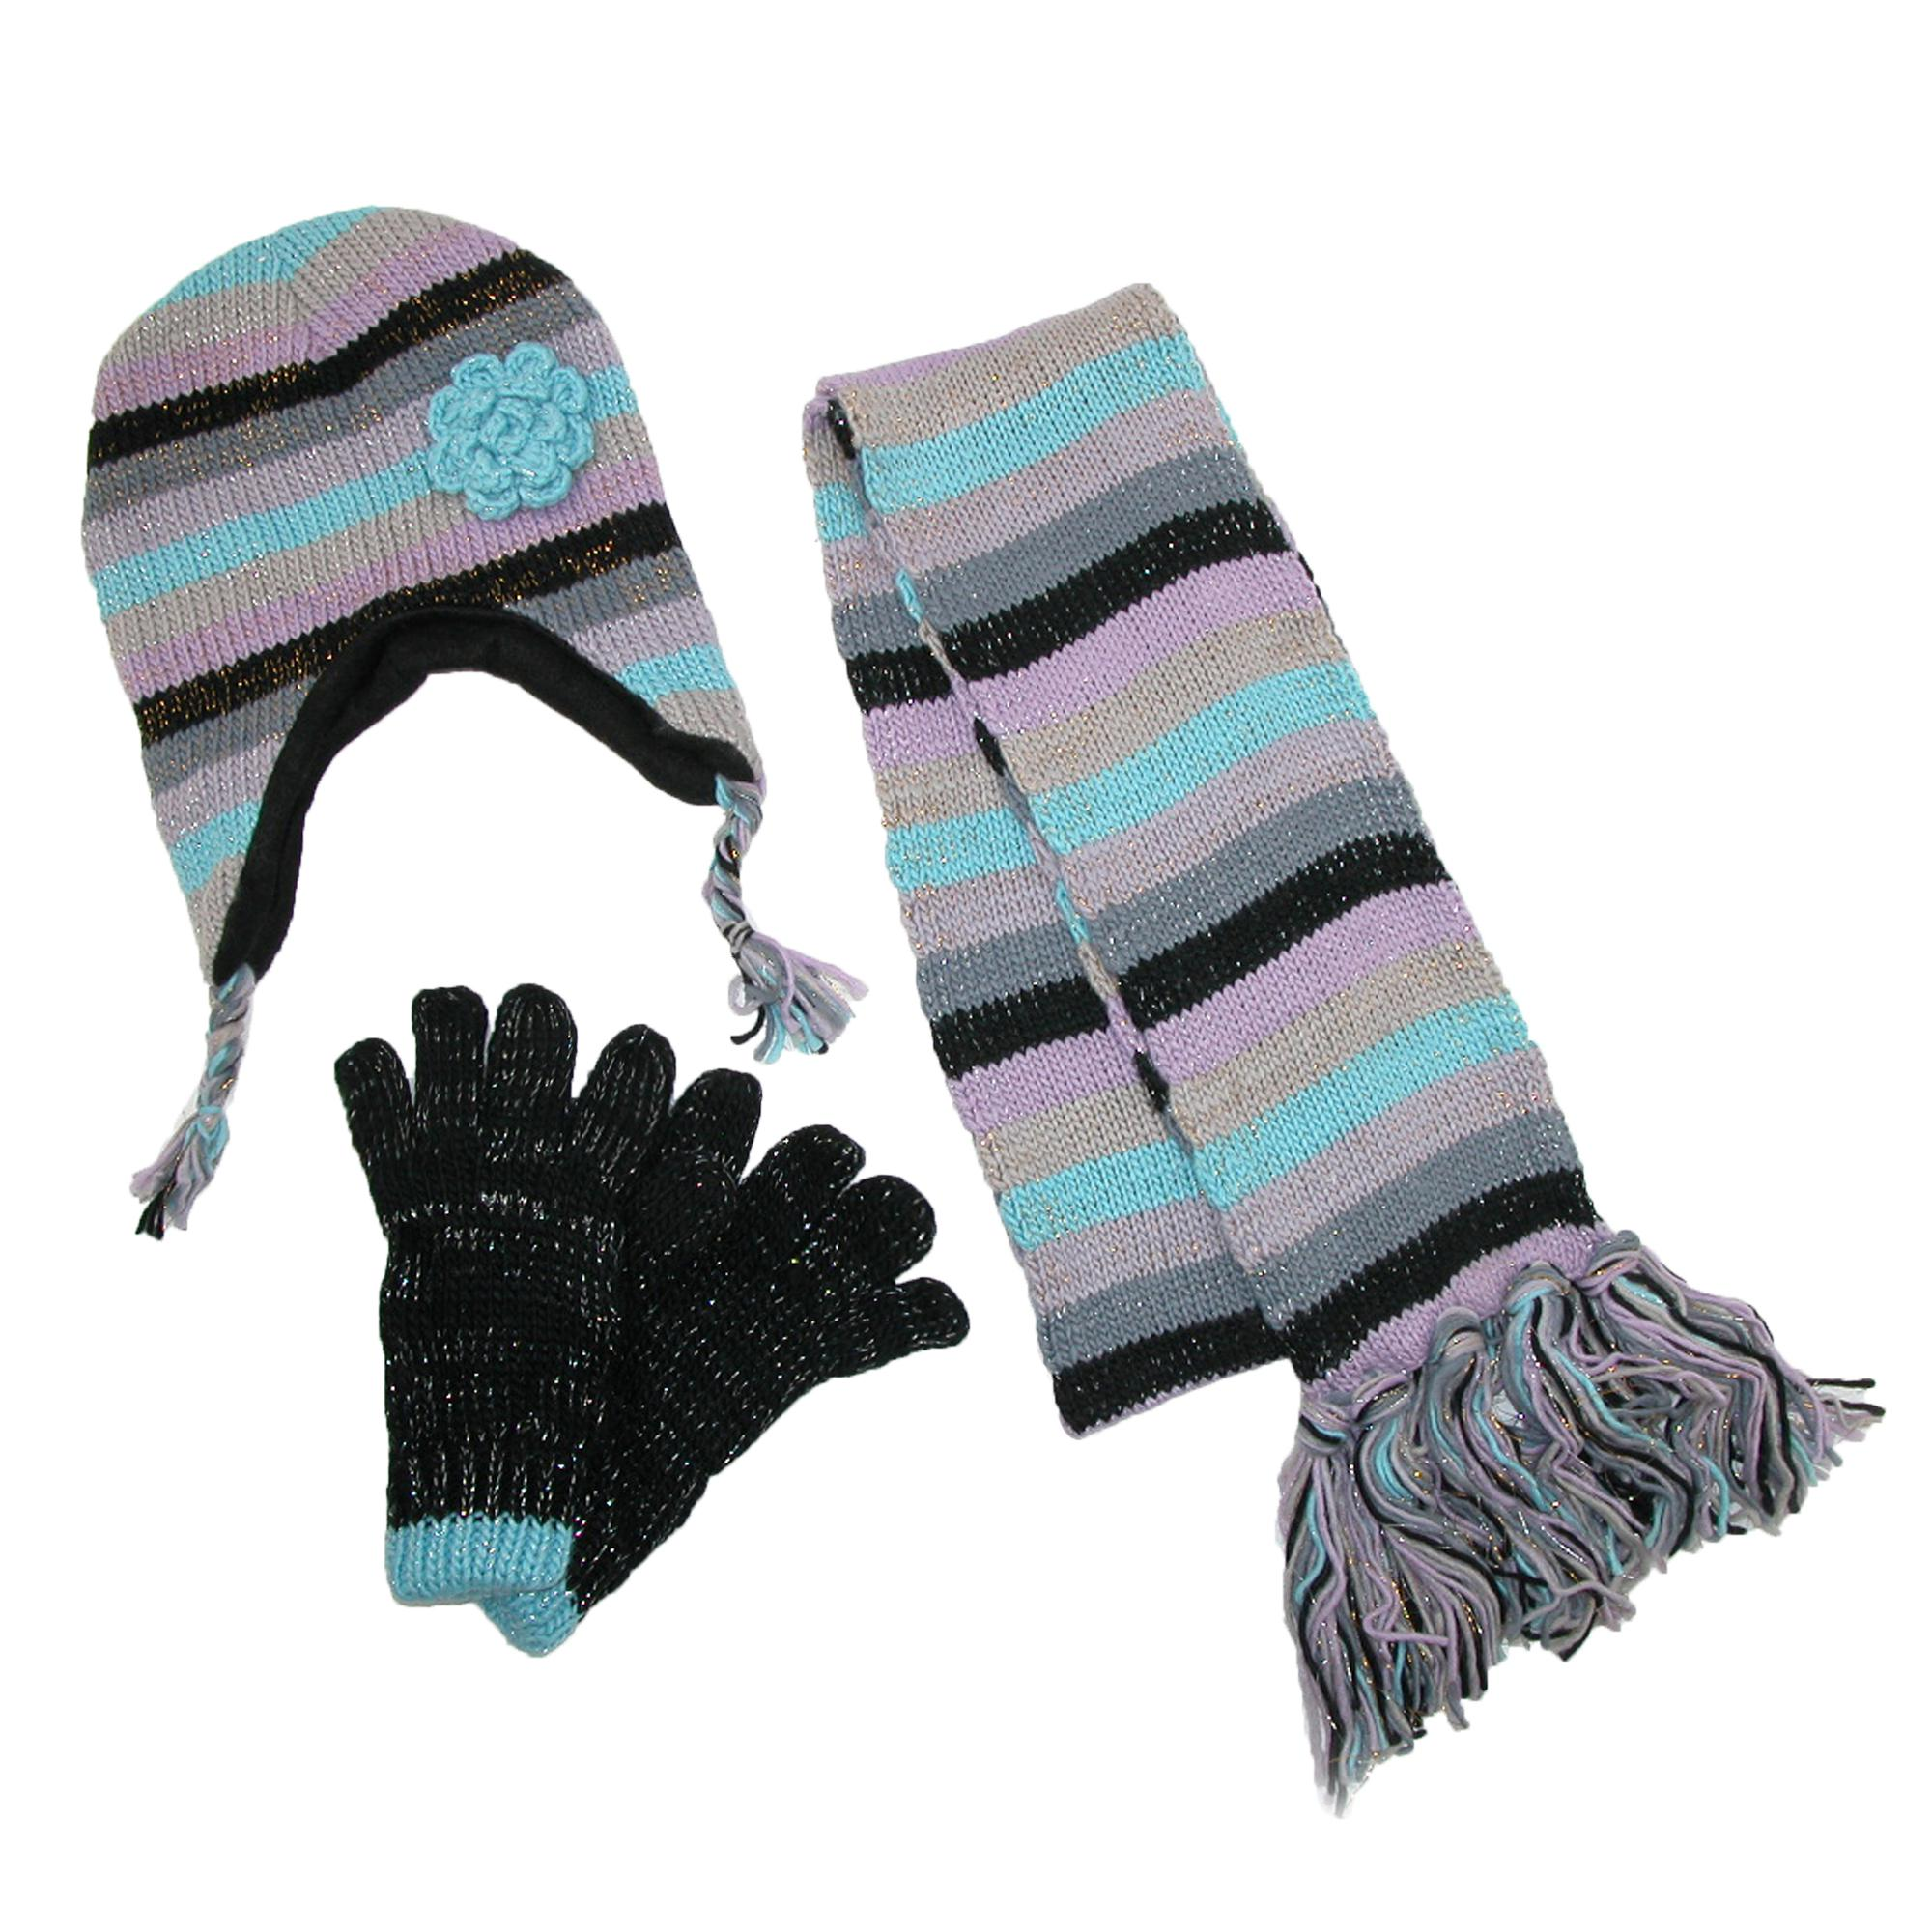 4cde32cfd30 Details about New CTM Women s Striped with Rosette Hat Gloves and Scarf  Winter Set